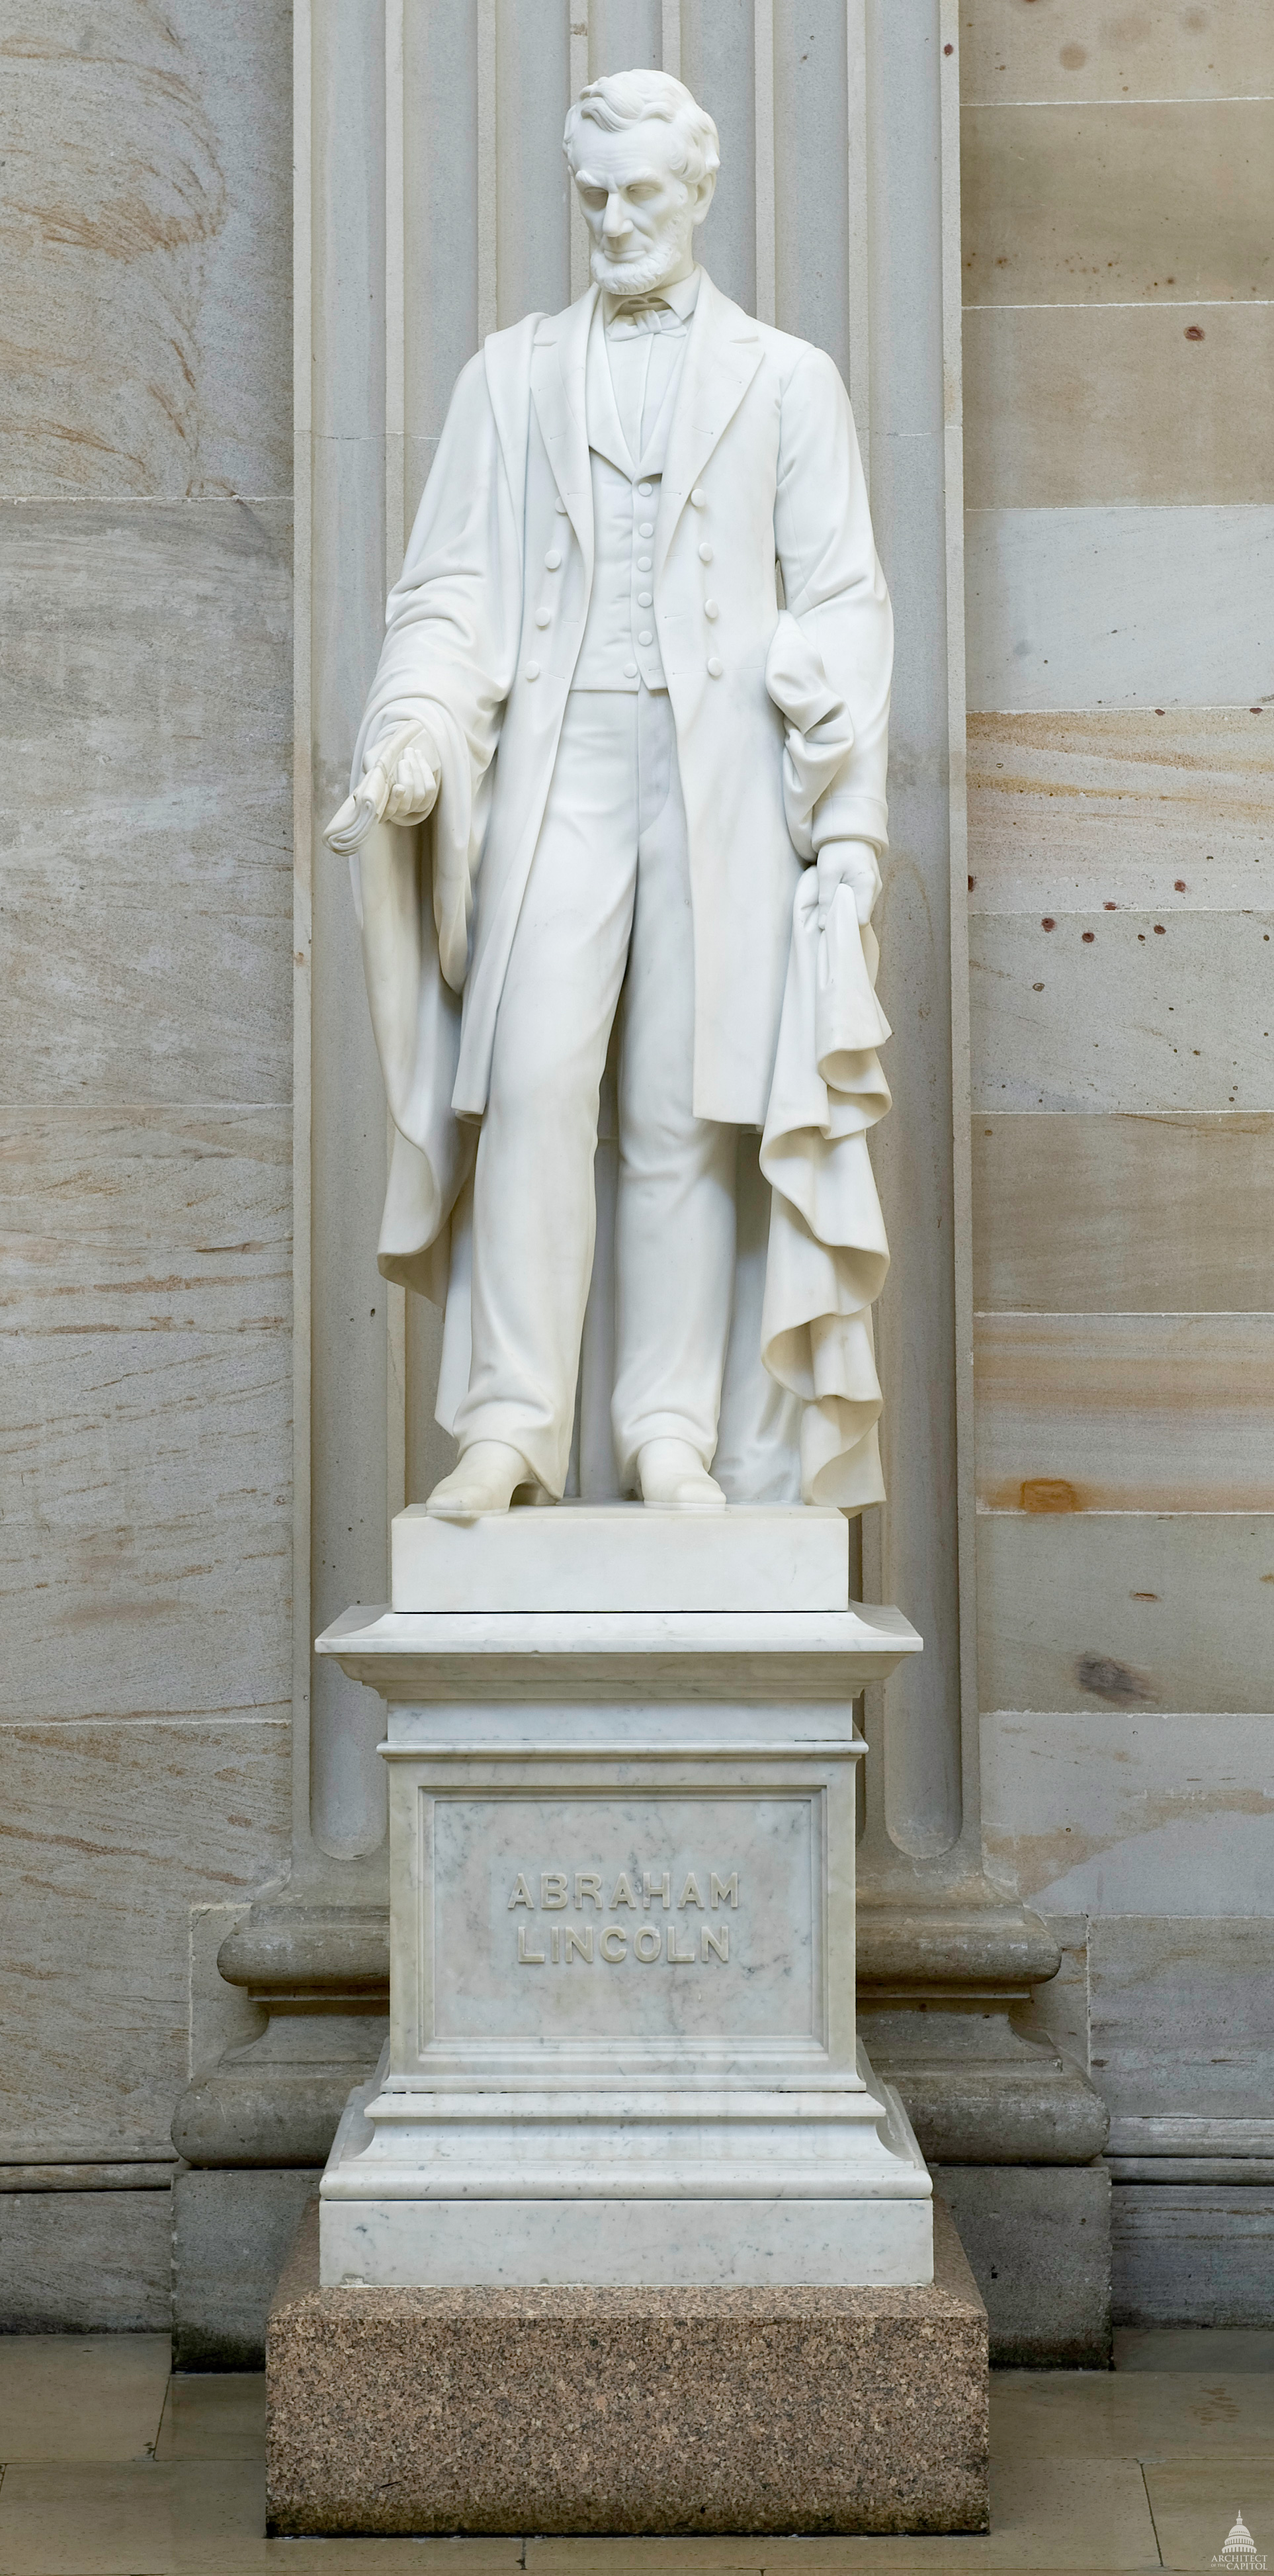 Abraham Lincoln Statue | Architect of the Capitol